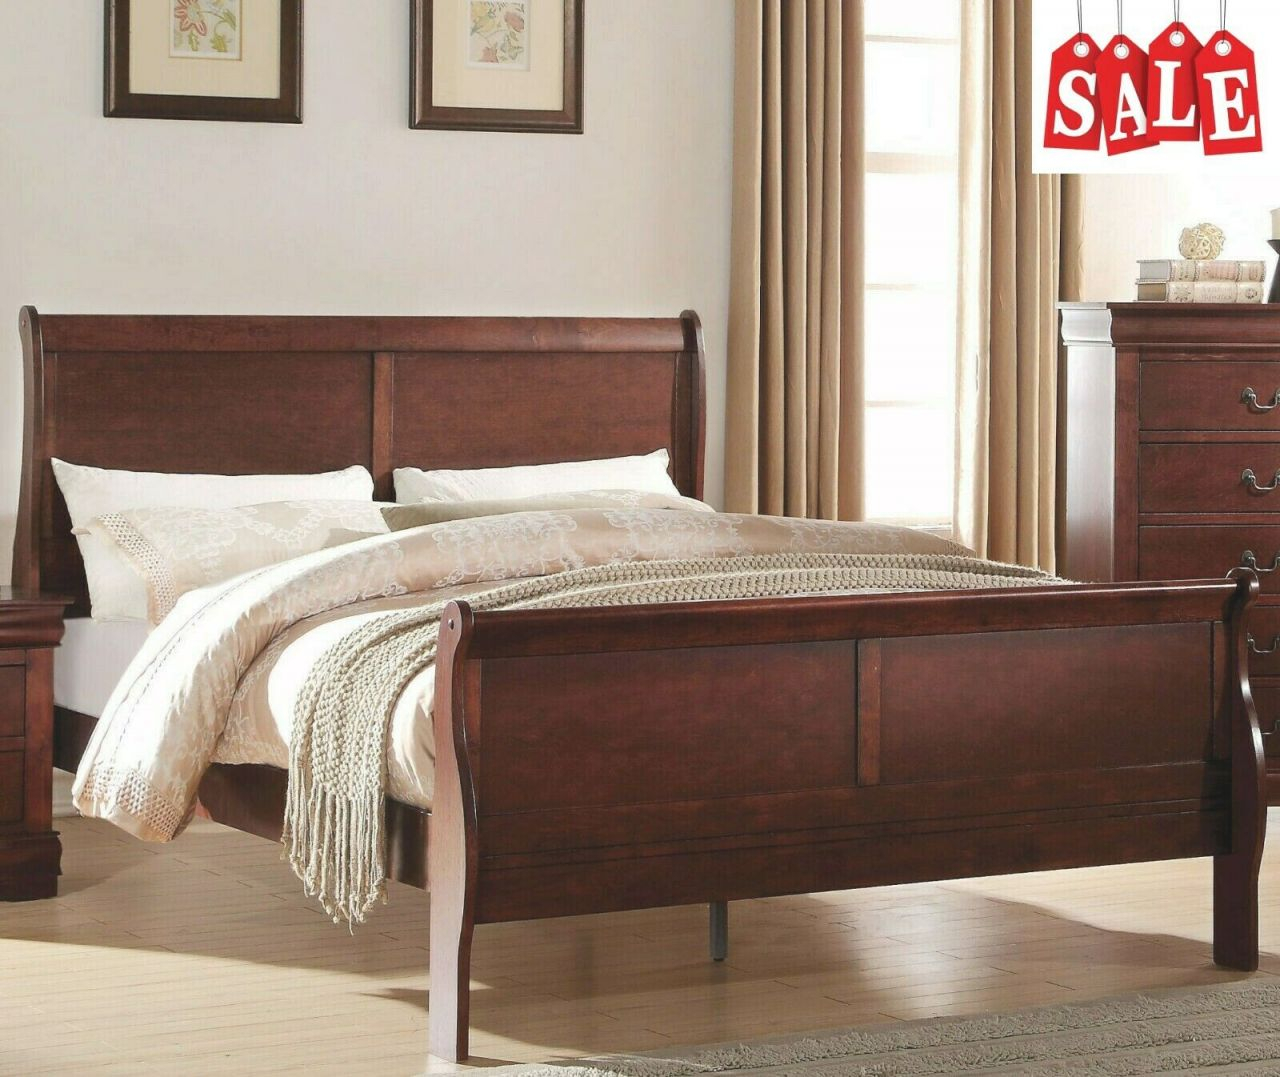 Modern Wooden King Size Bed Frame With Headboard & Footboard Bedroom  Furniture with King Bed Frame With Headboard